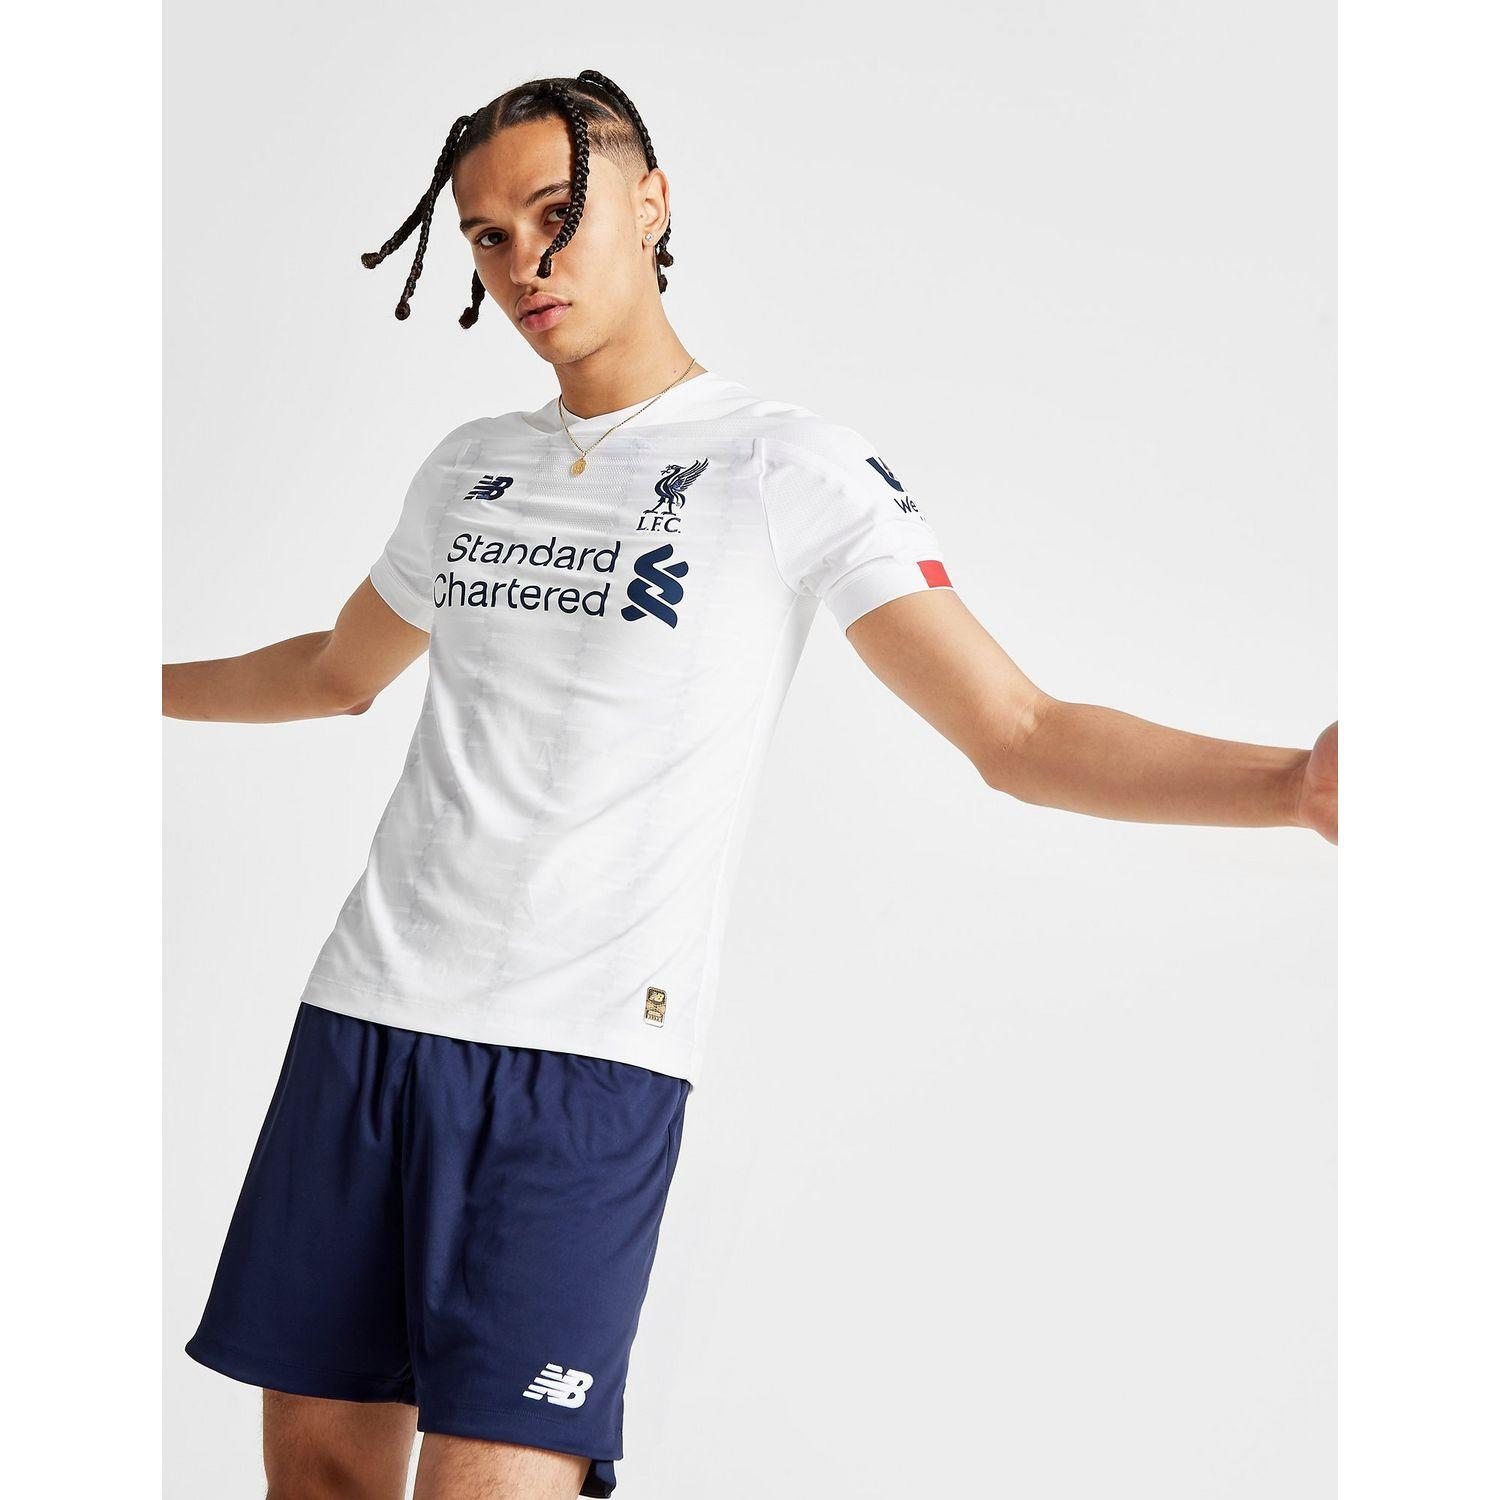 reputable site f5641 82d93 New Balance Liverpool Fc 2019/20 Elite Away Shirt in White ...